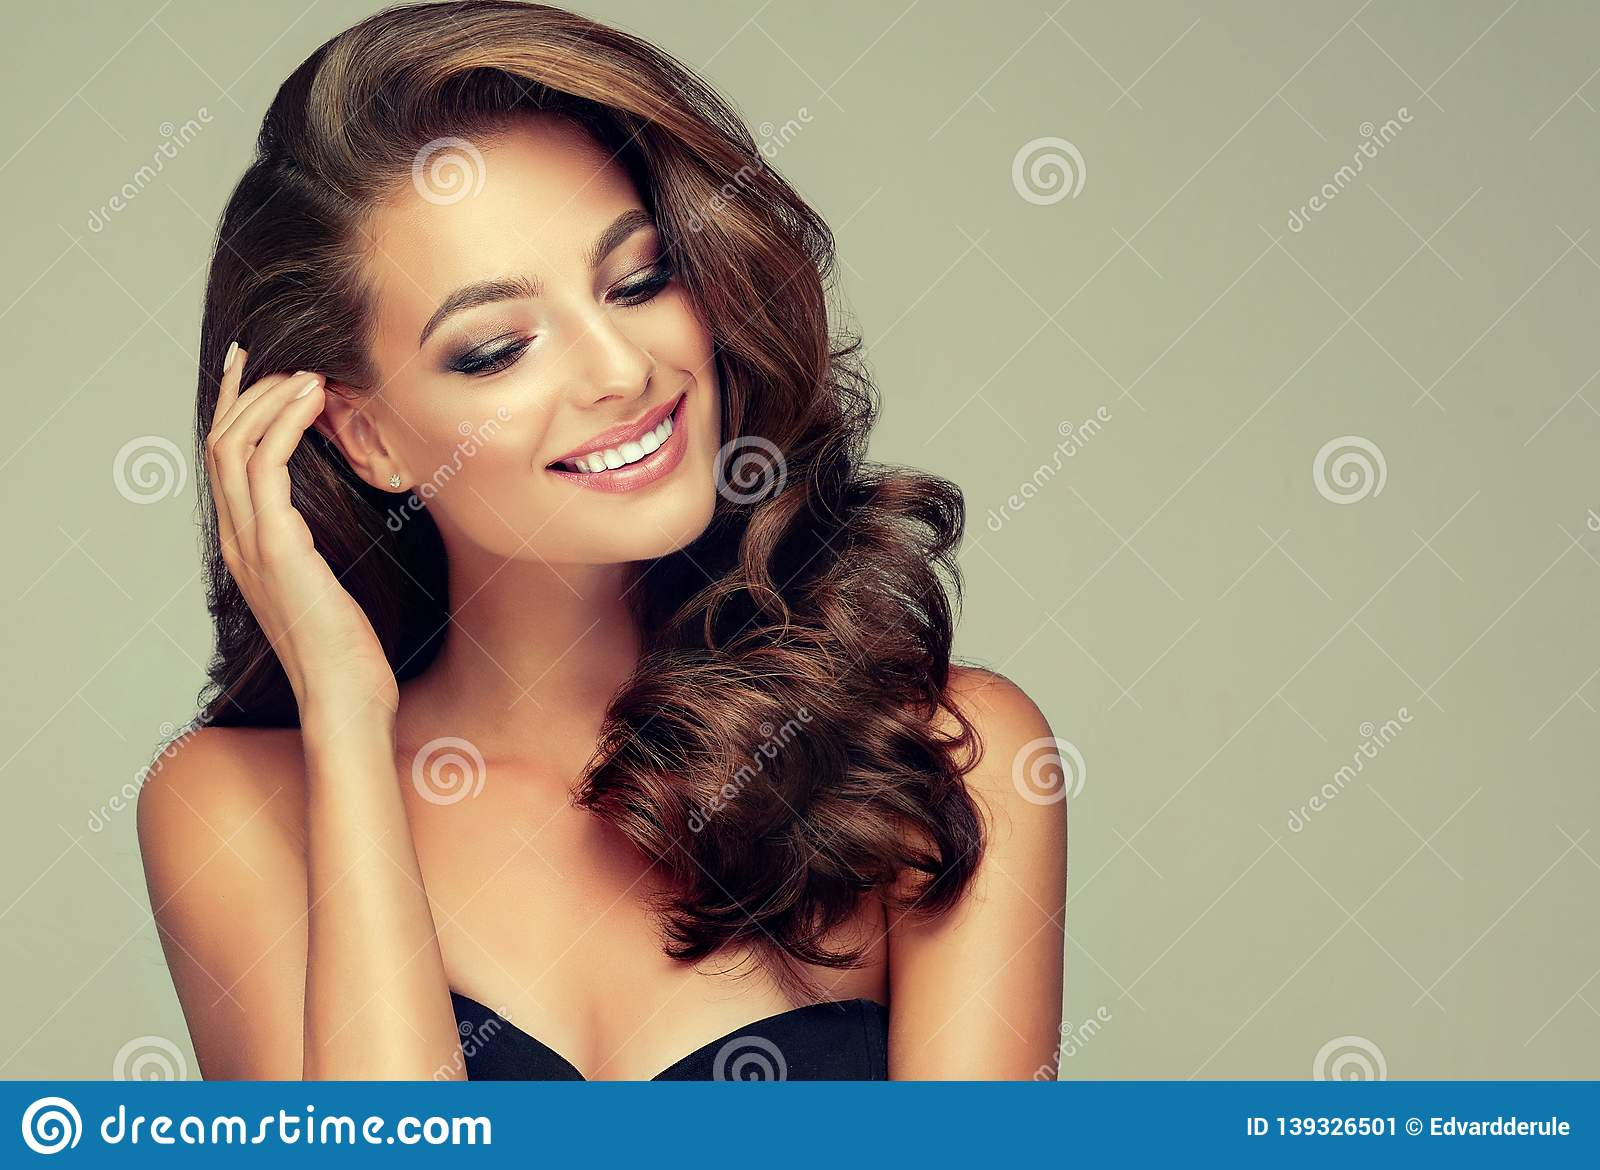 Superb Light And Wide Smile On The Face Of Young Brown Haired Beautiful Natural Hairstyles Runnerswayorg